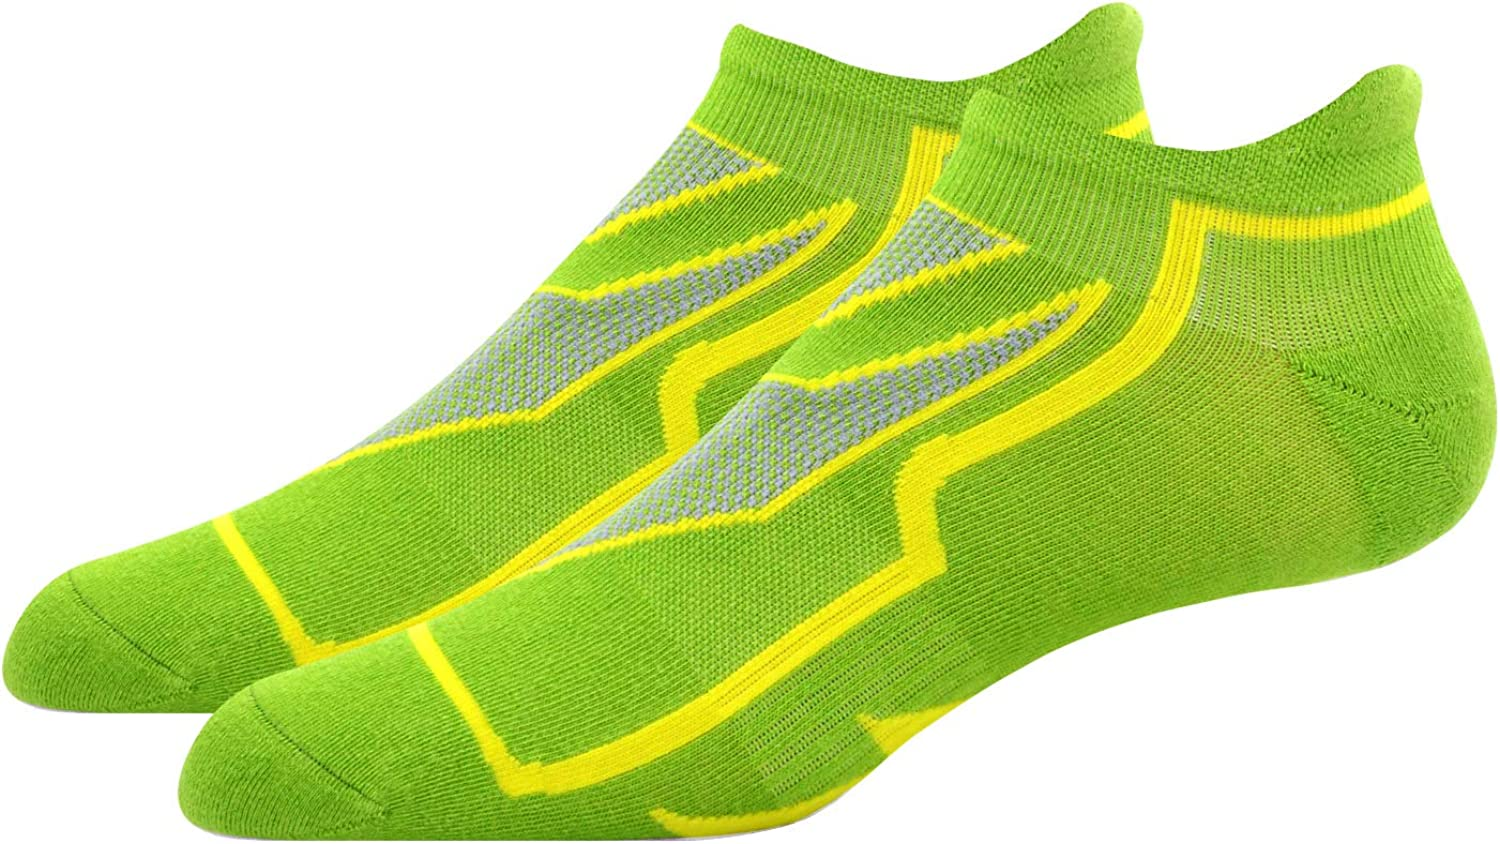 Busy Socks No Show Running Sports Compression Comfort Cushioned Footie Sneaker Socks for Men and Women 1,3,6 Pack